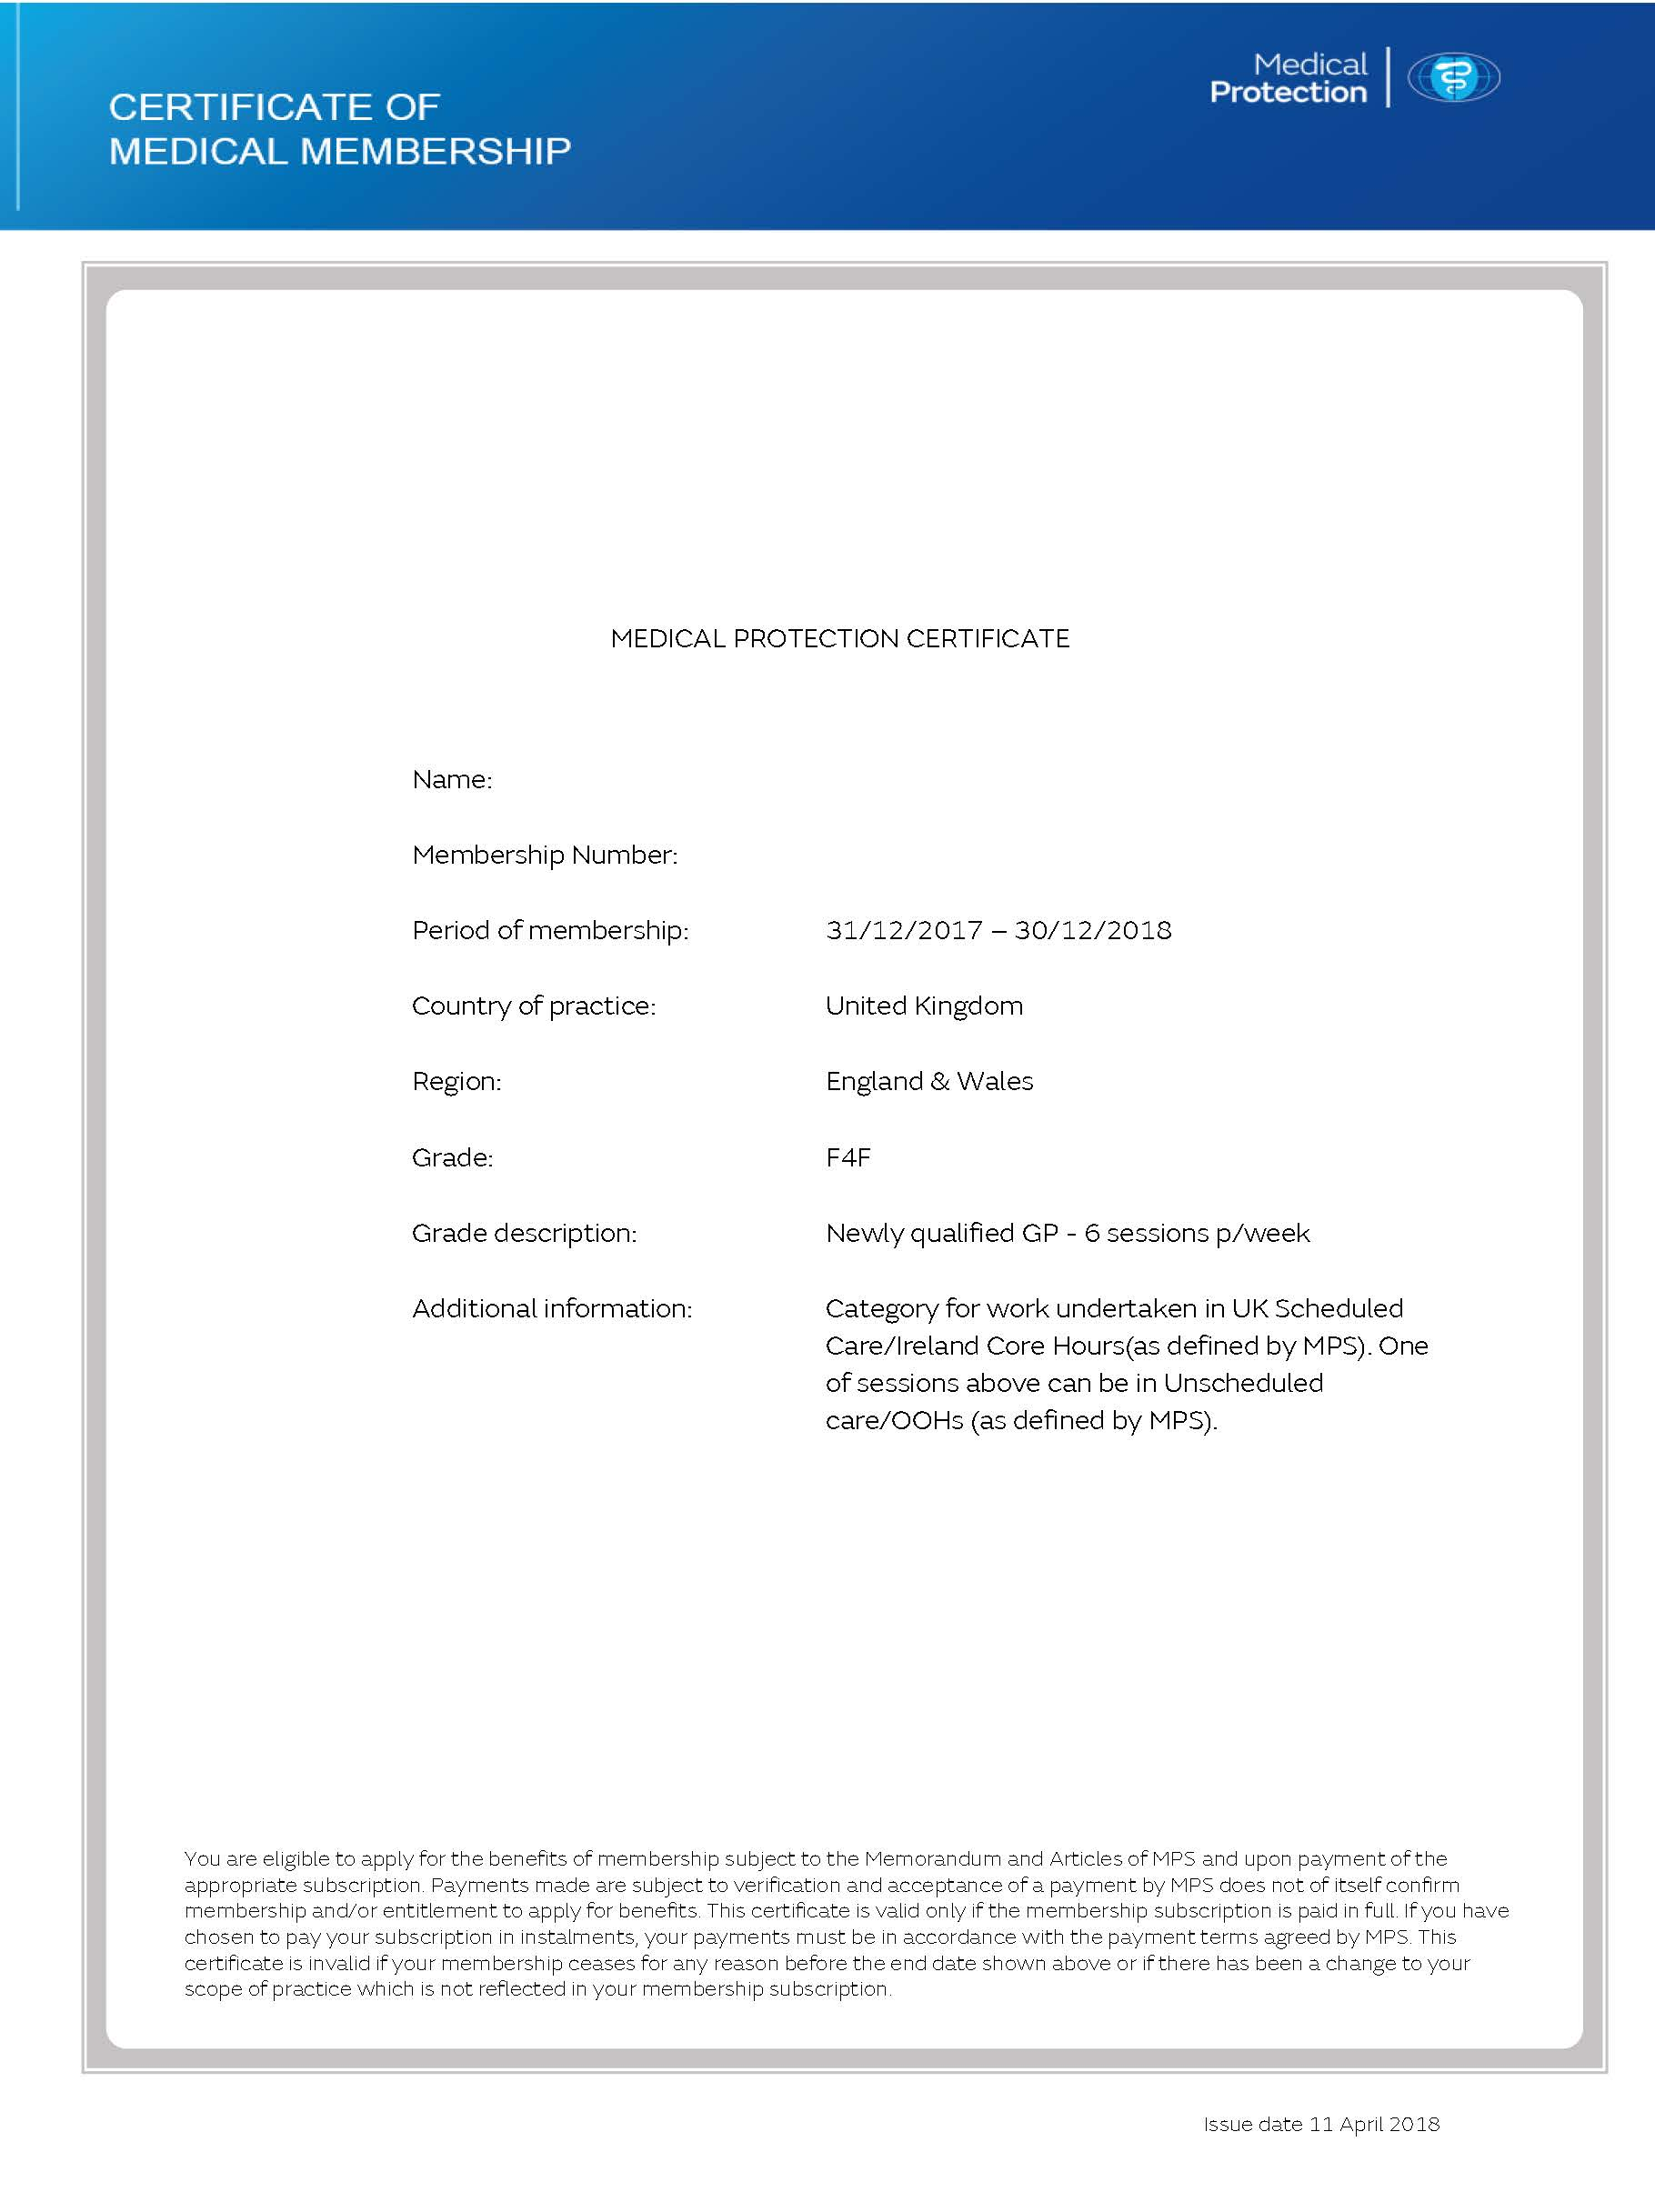 Inemnity_example_3_MPS__Medical_Protection_Certificate_Page_1.jpg